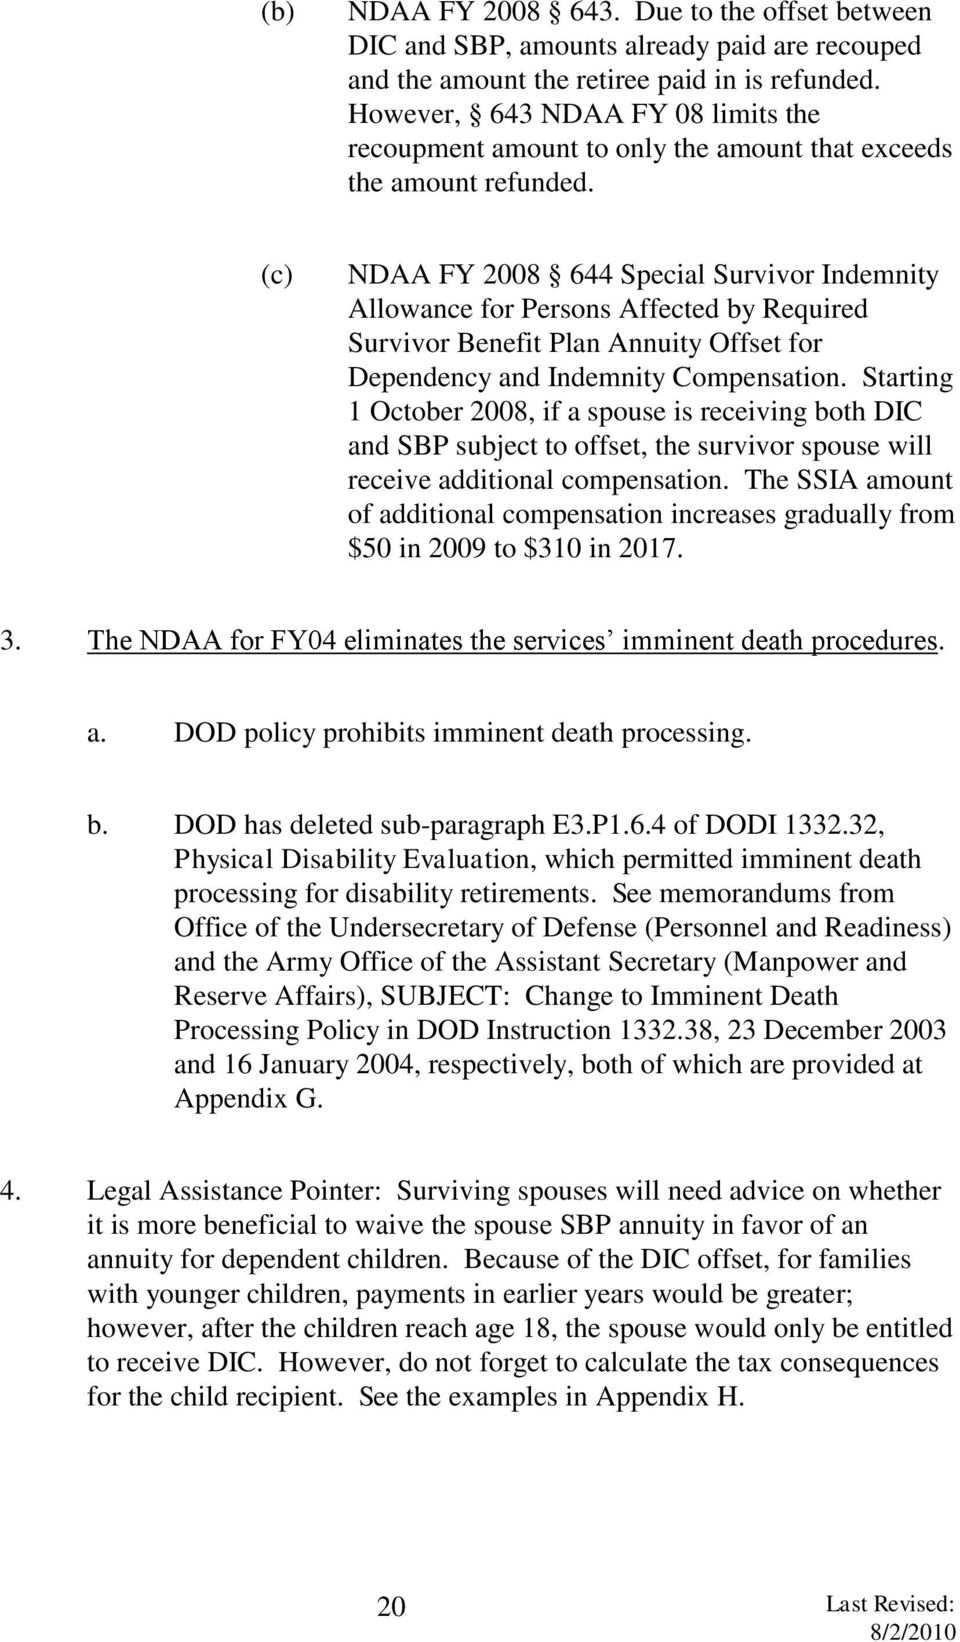 (c) NDAA FY 2008 644 Special Survivor Indemnity Allowance for Persons Affected by Required Survivor Benefit Plan Annuity Offset for Dependency and Indemnity Compensation.